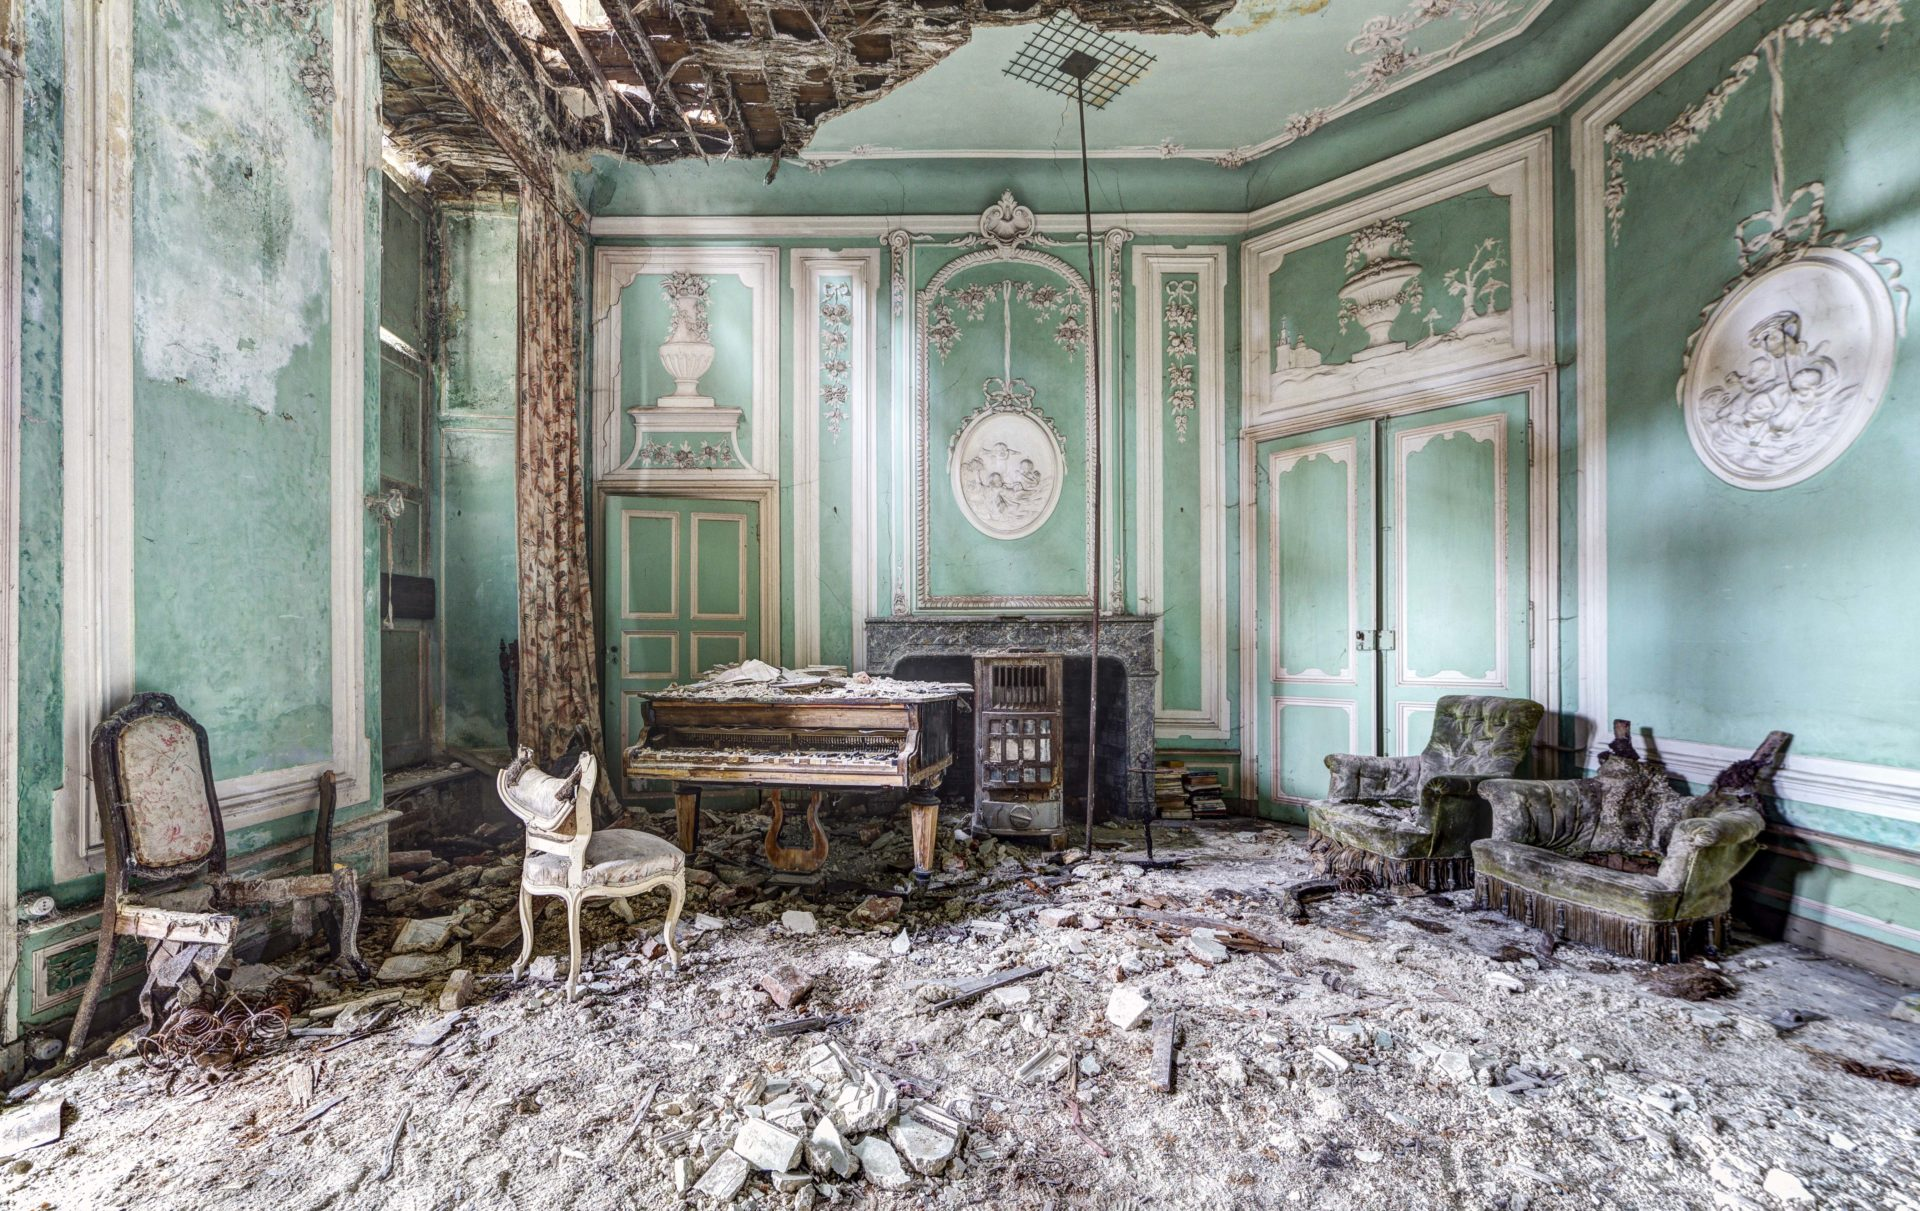 abandoned piano in Belgium, Romain Thiery photographer, requiem pour pianos series